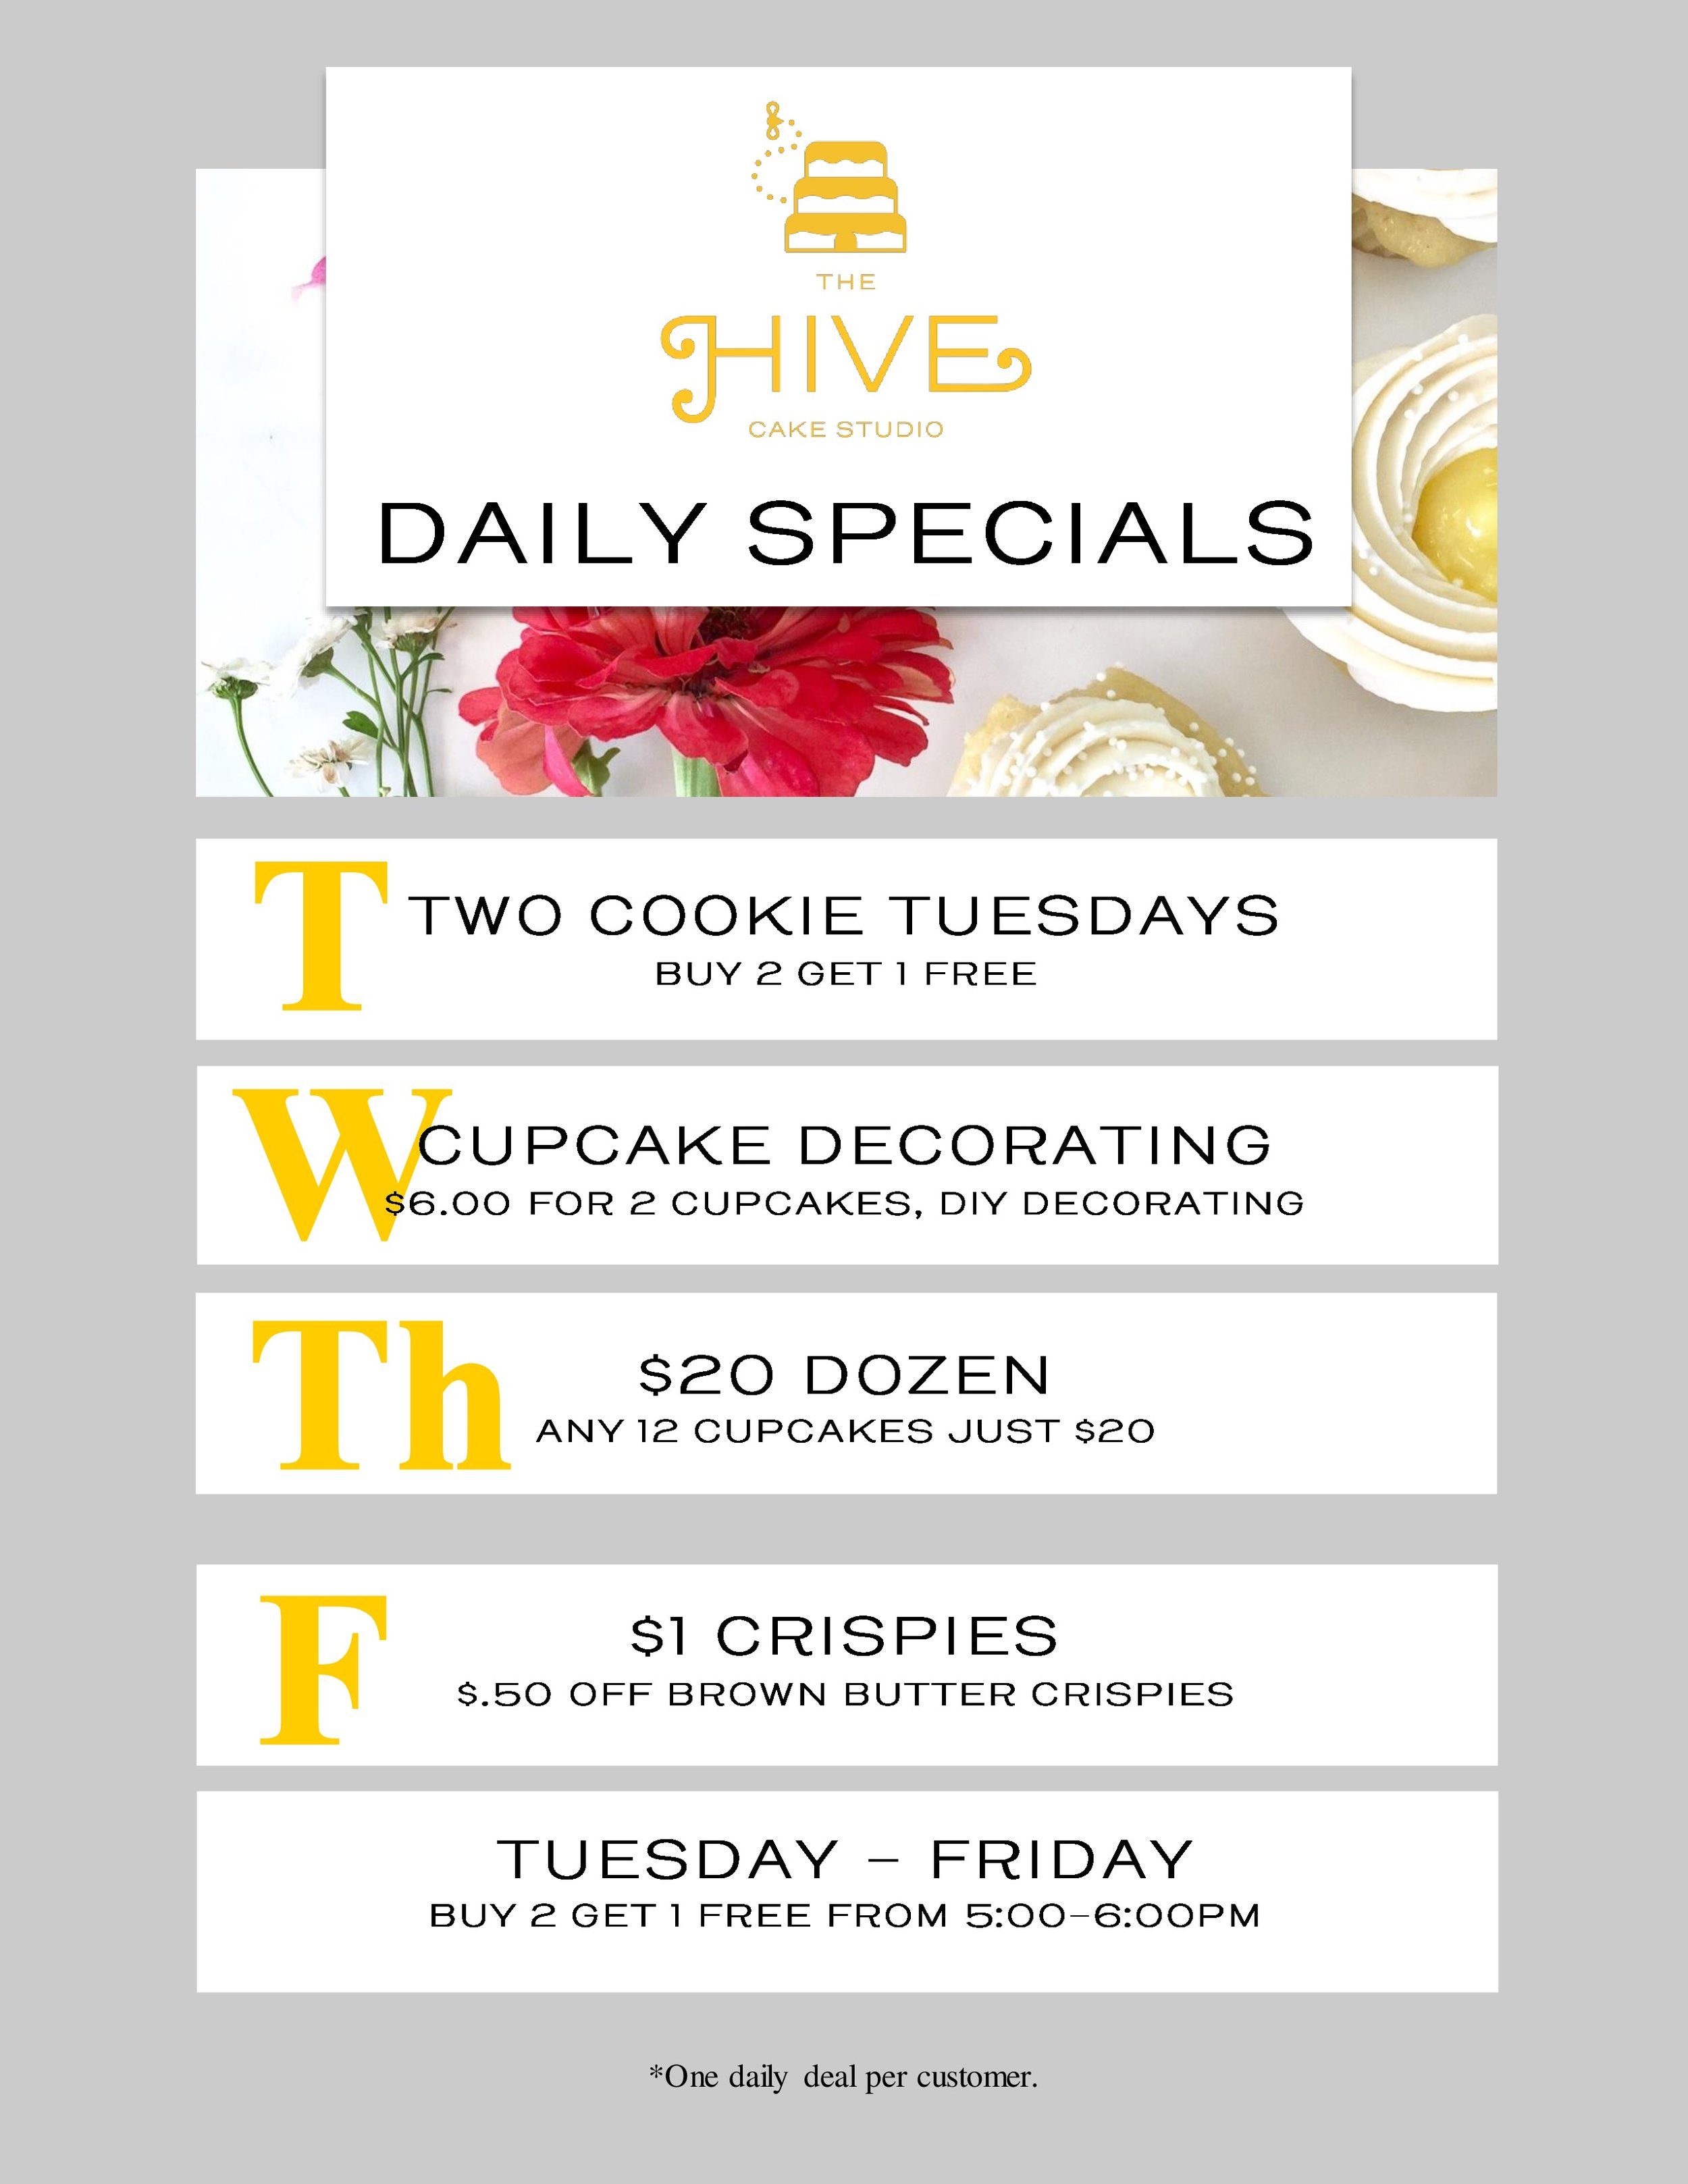 In the mood for something sweet? We have you covered. Everyday of the week we are offering a deal to satisfy your cravings! So stop on in and indulge without the guilt!